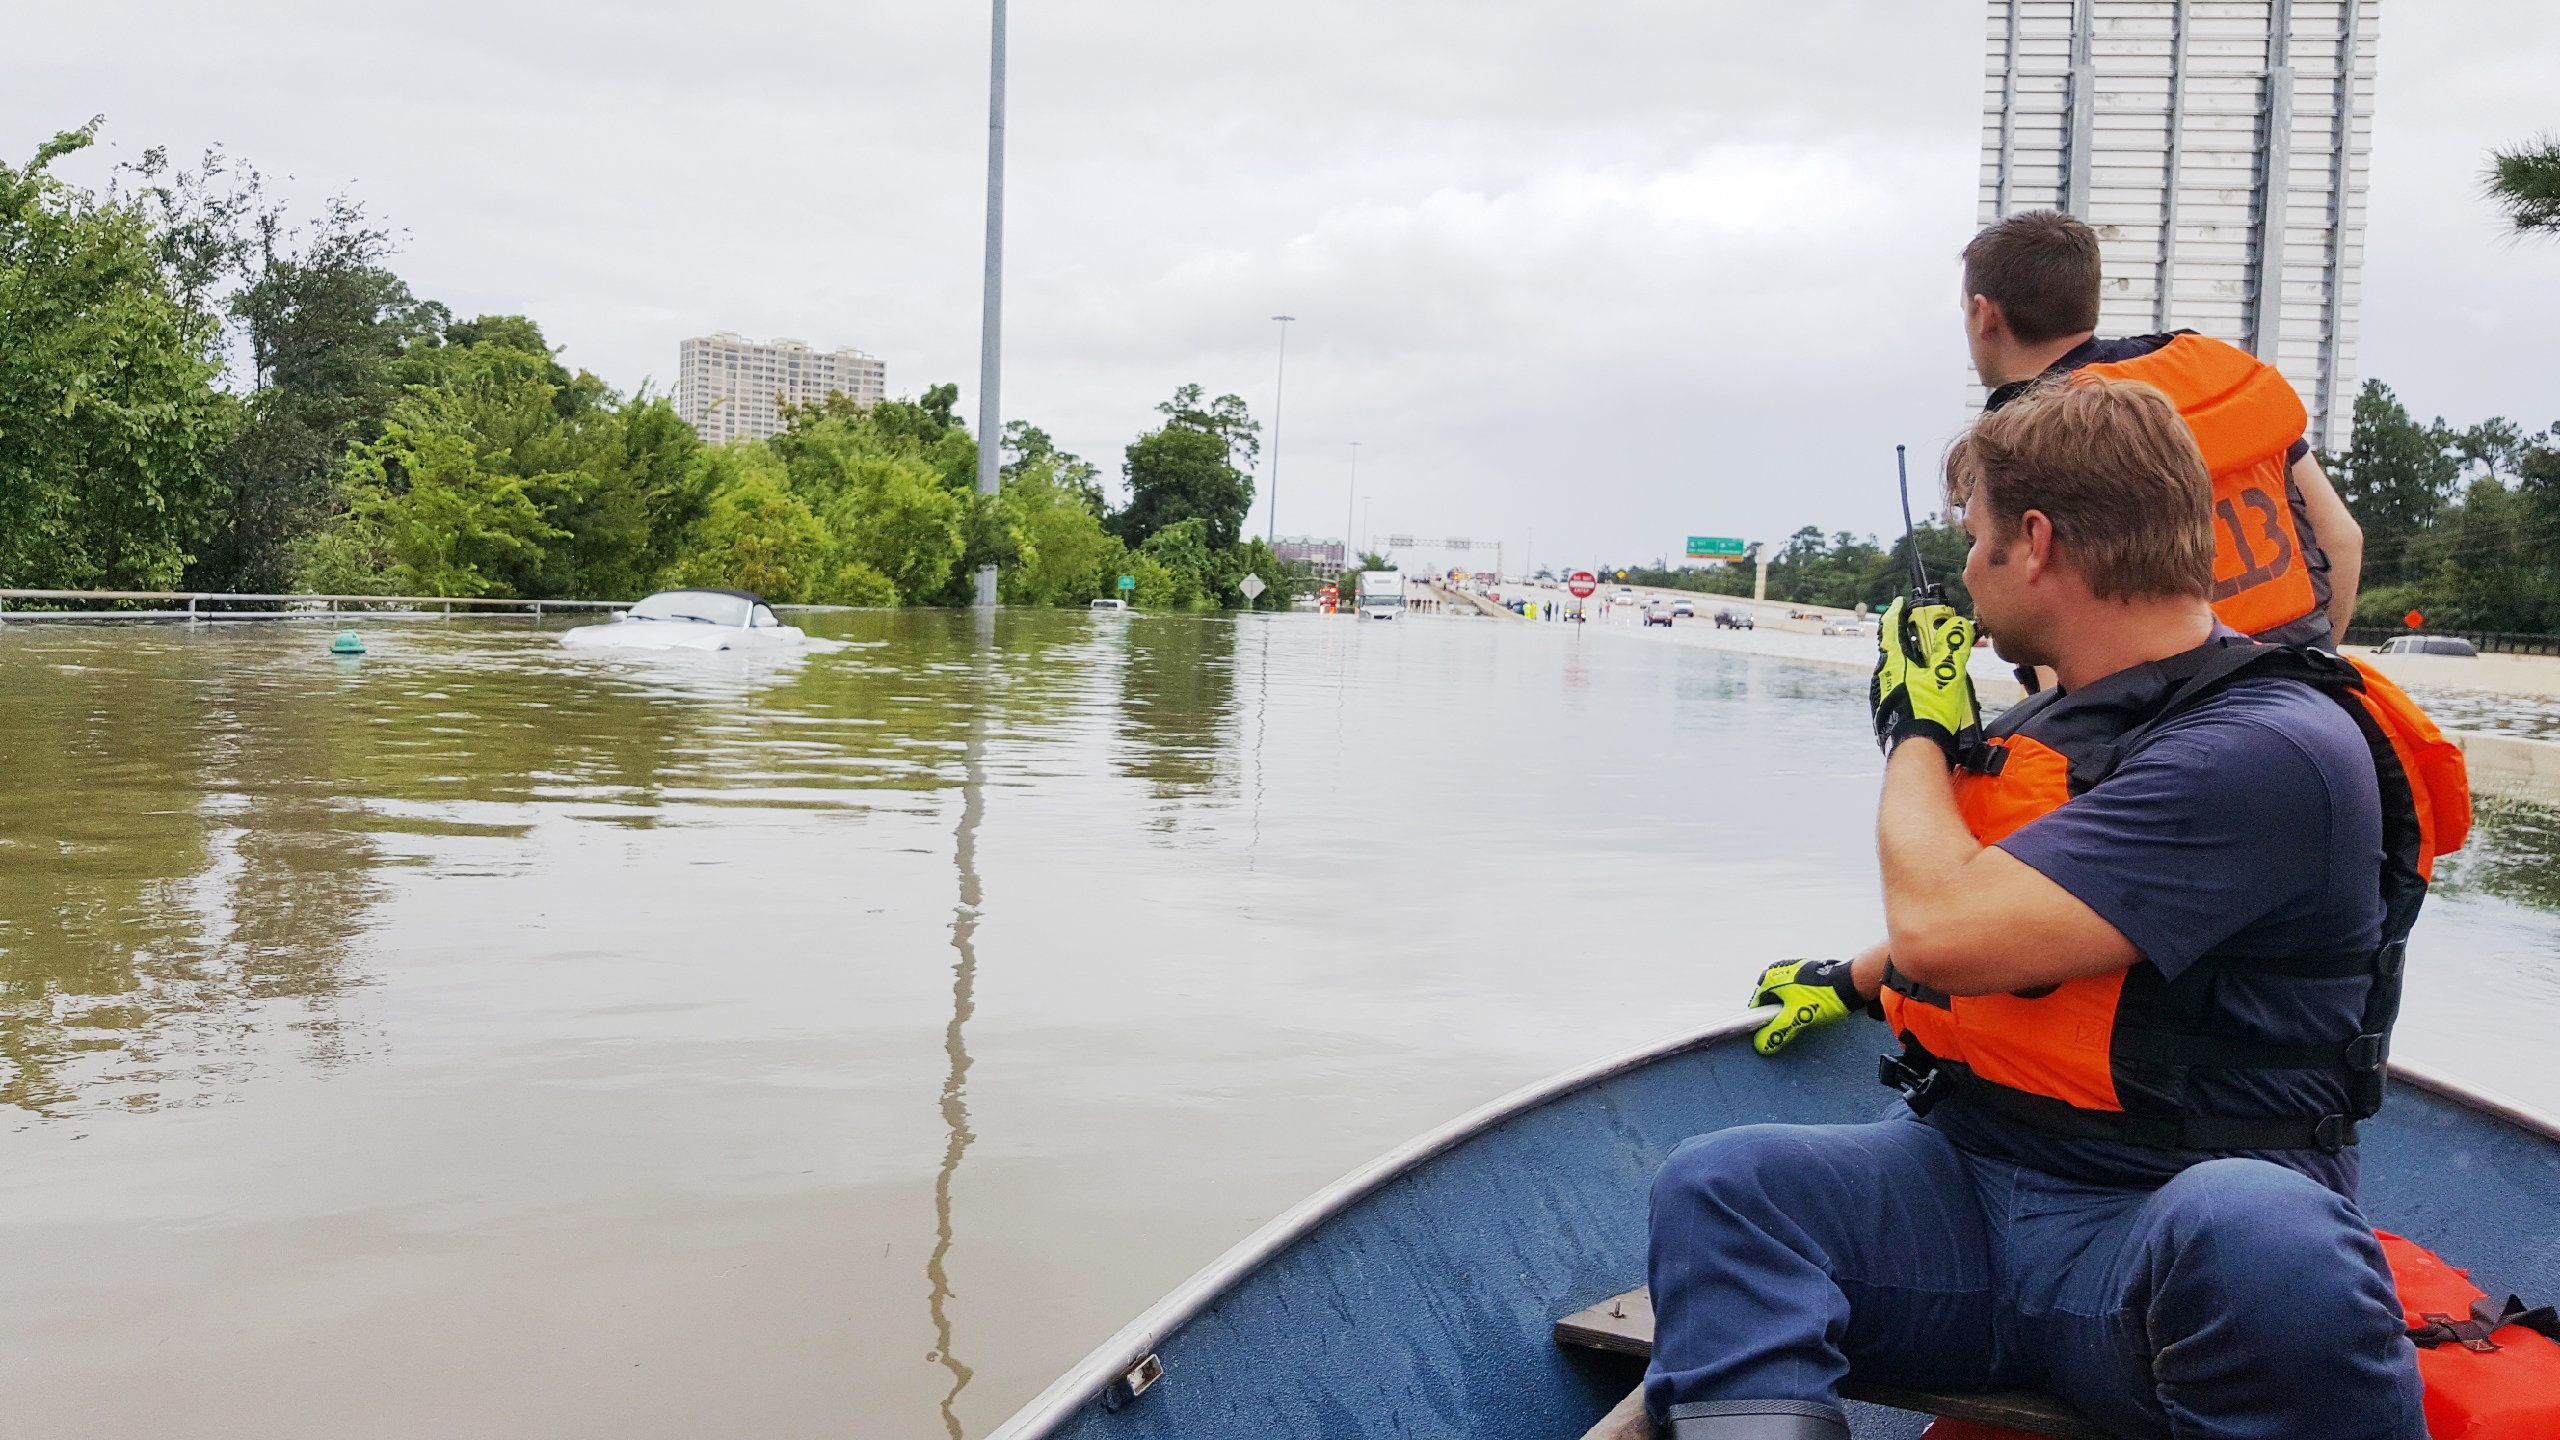 Houston Faces Catastrophic Flooding And Rain As Tropical Storm Harvey